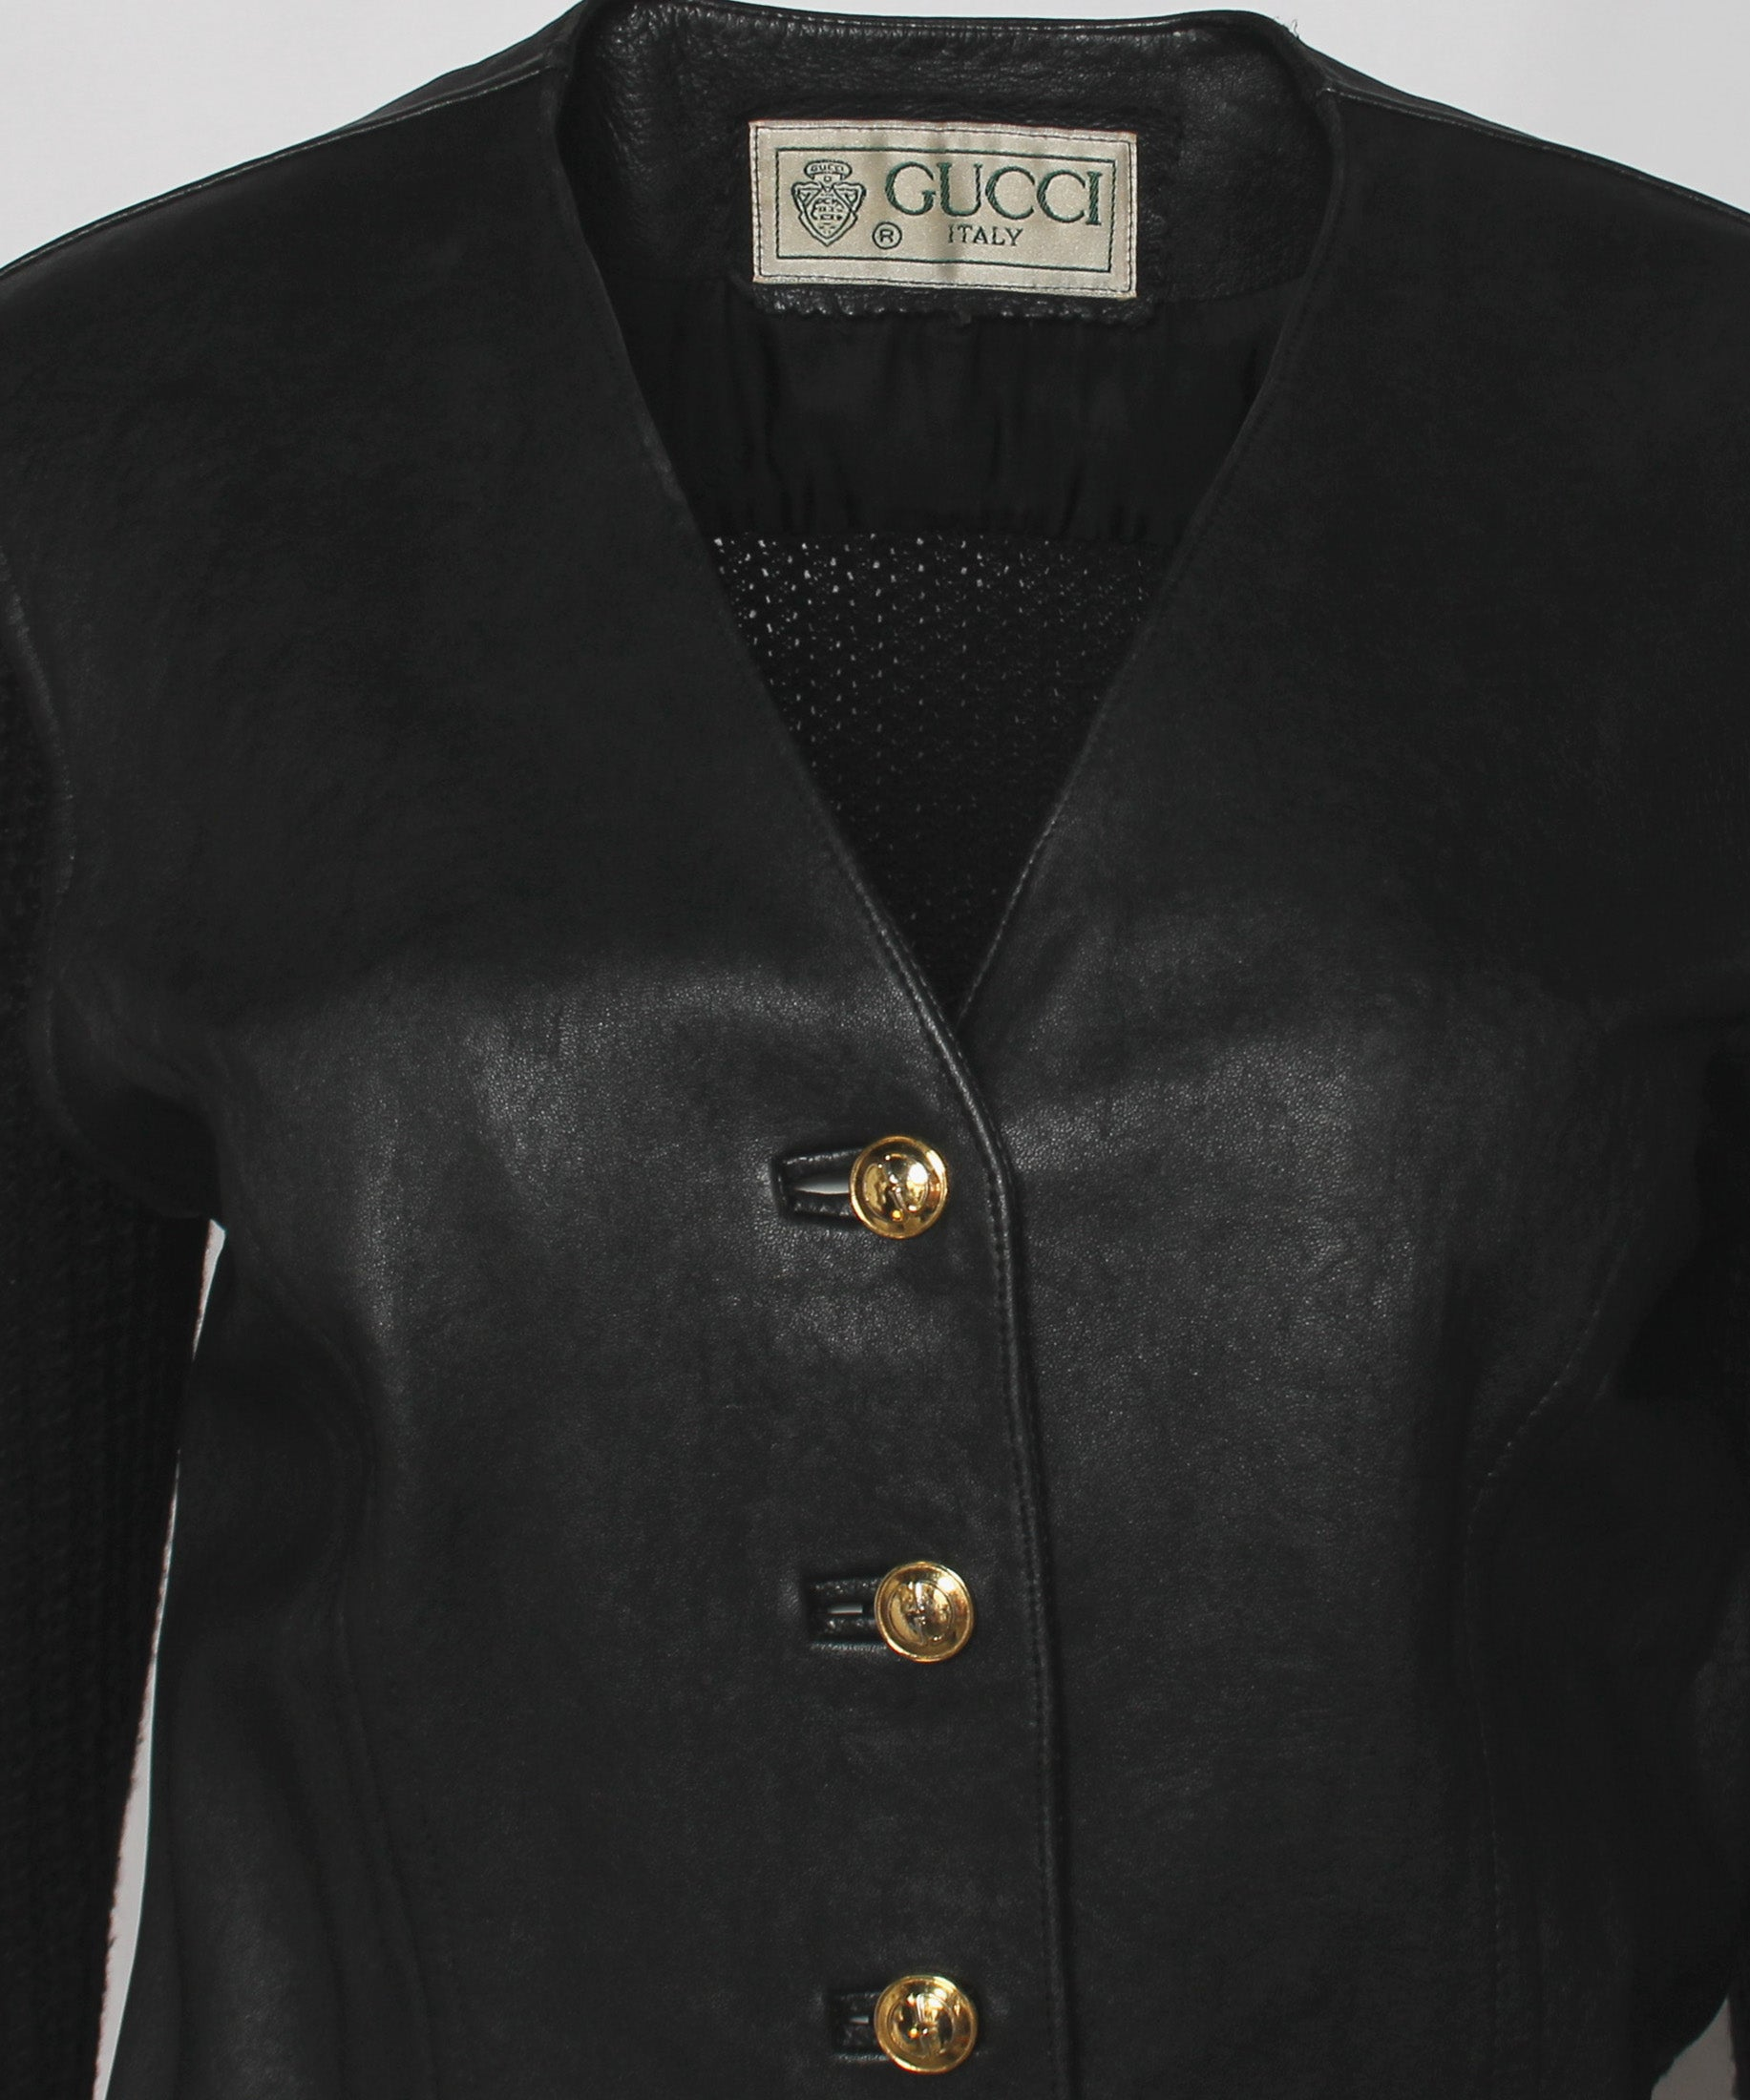 1970s Gucci Leather Knit Cardigan - C.Madeleine's